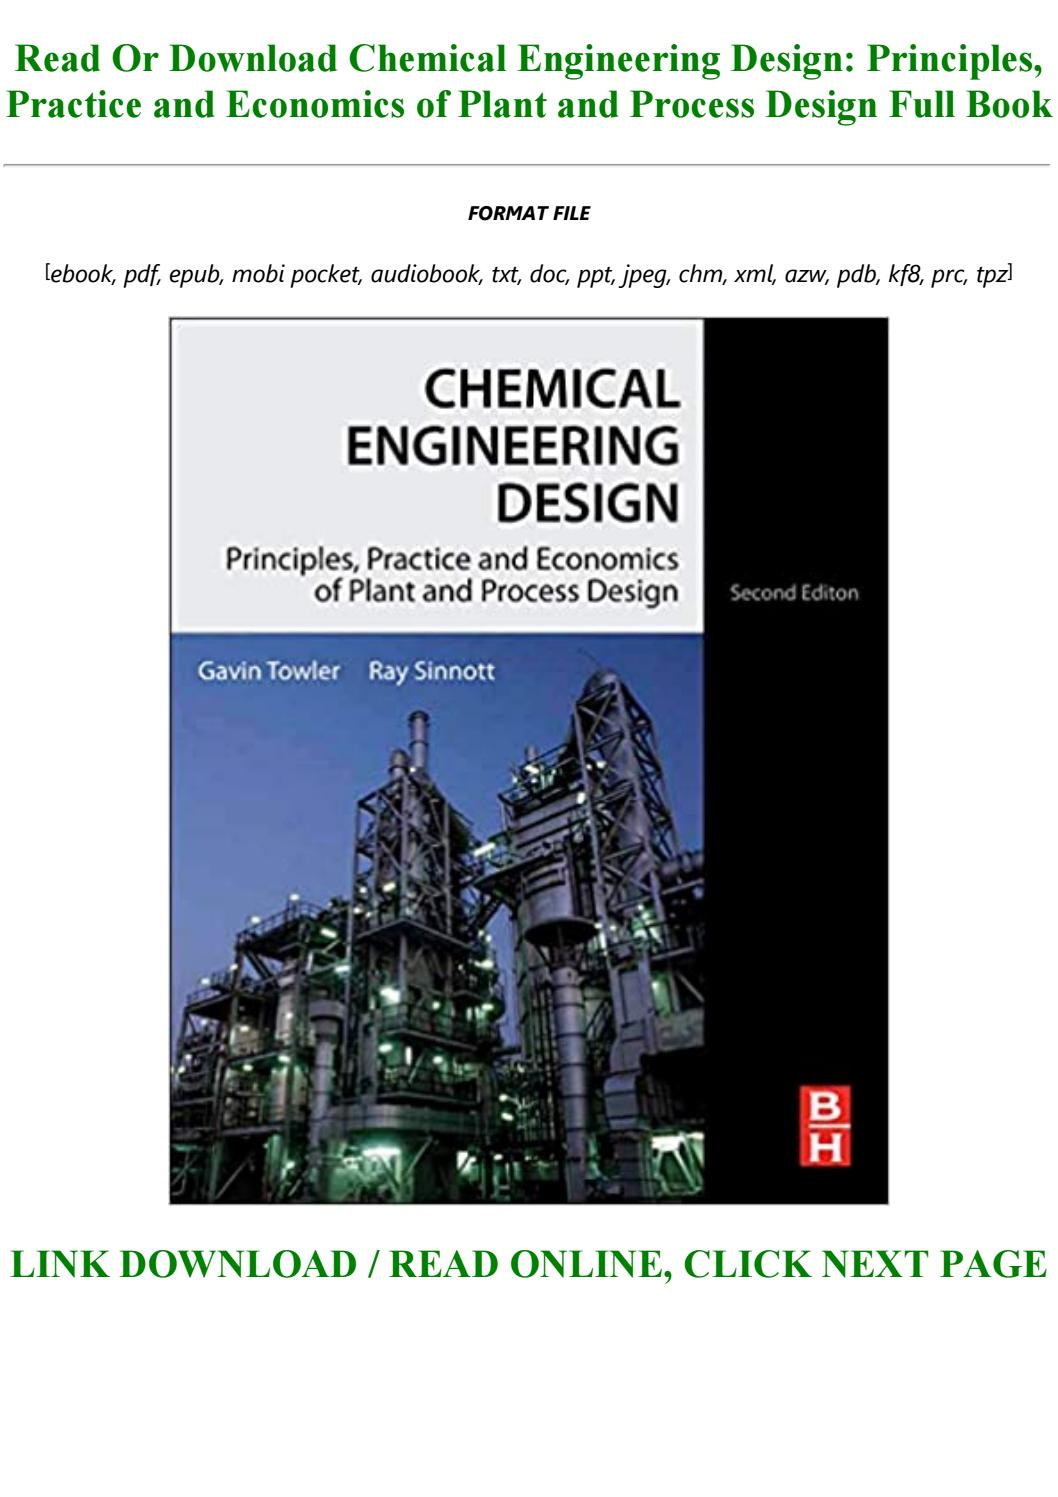 Chemical Engineering Design Principles Practice And Economics Of Plant And Process Design By Tyke146546 Issuu